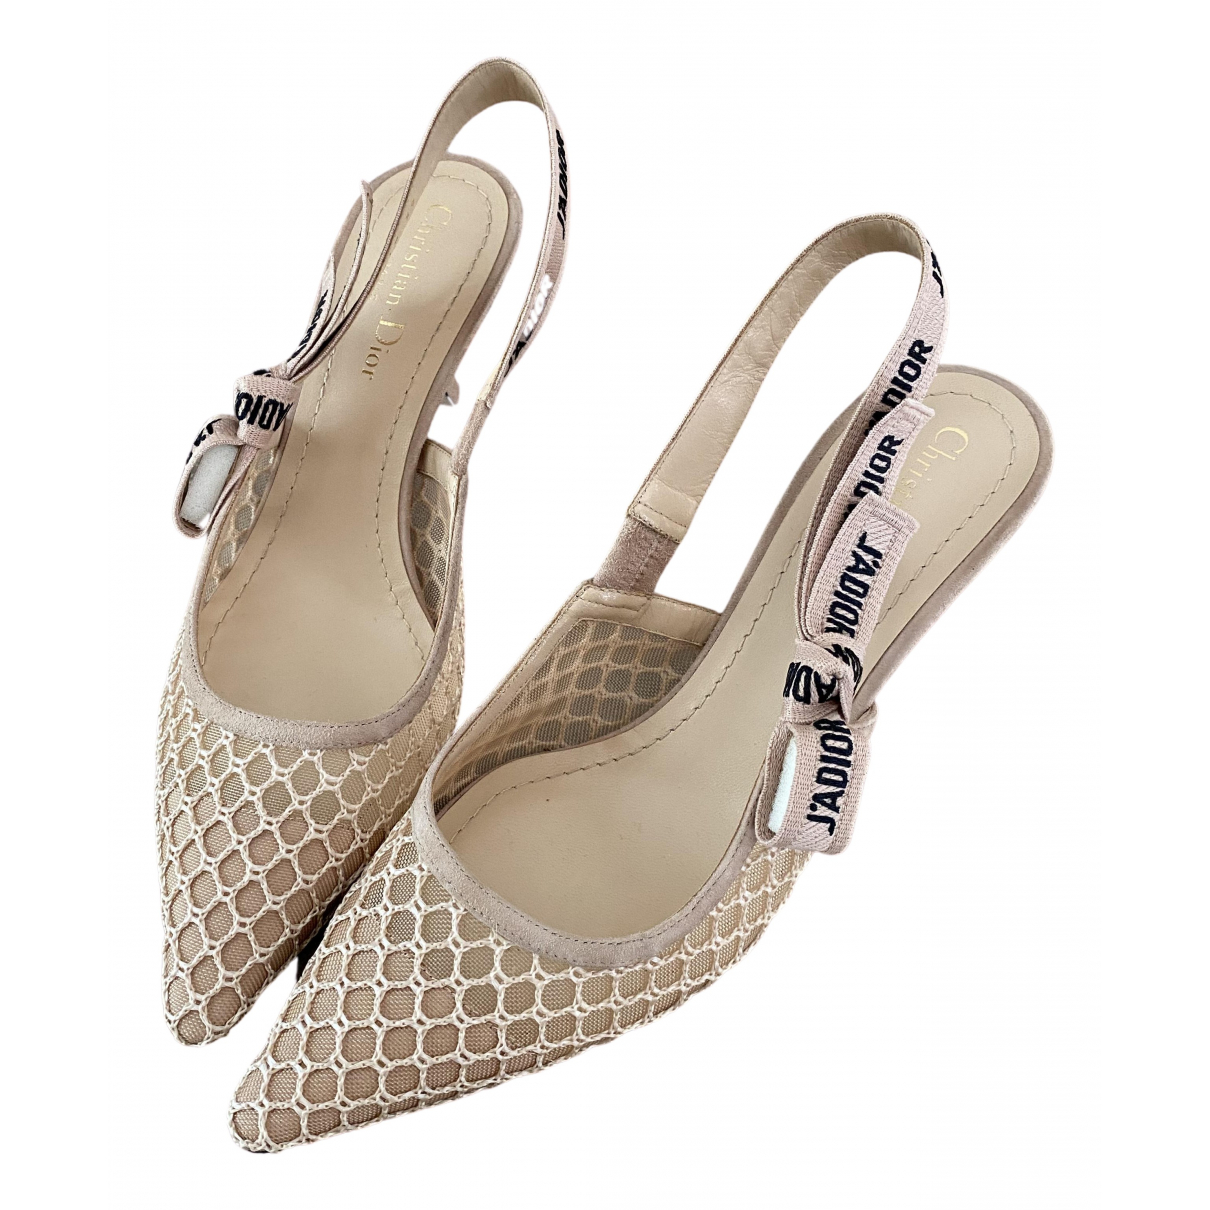 Dior J'adior Beige Cloth Heels for Women 39 EU